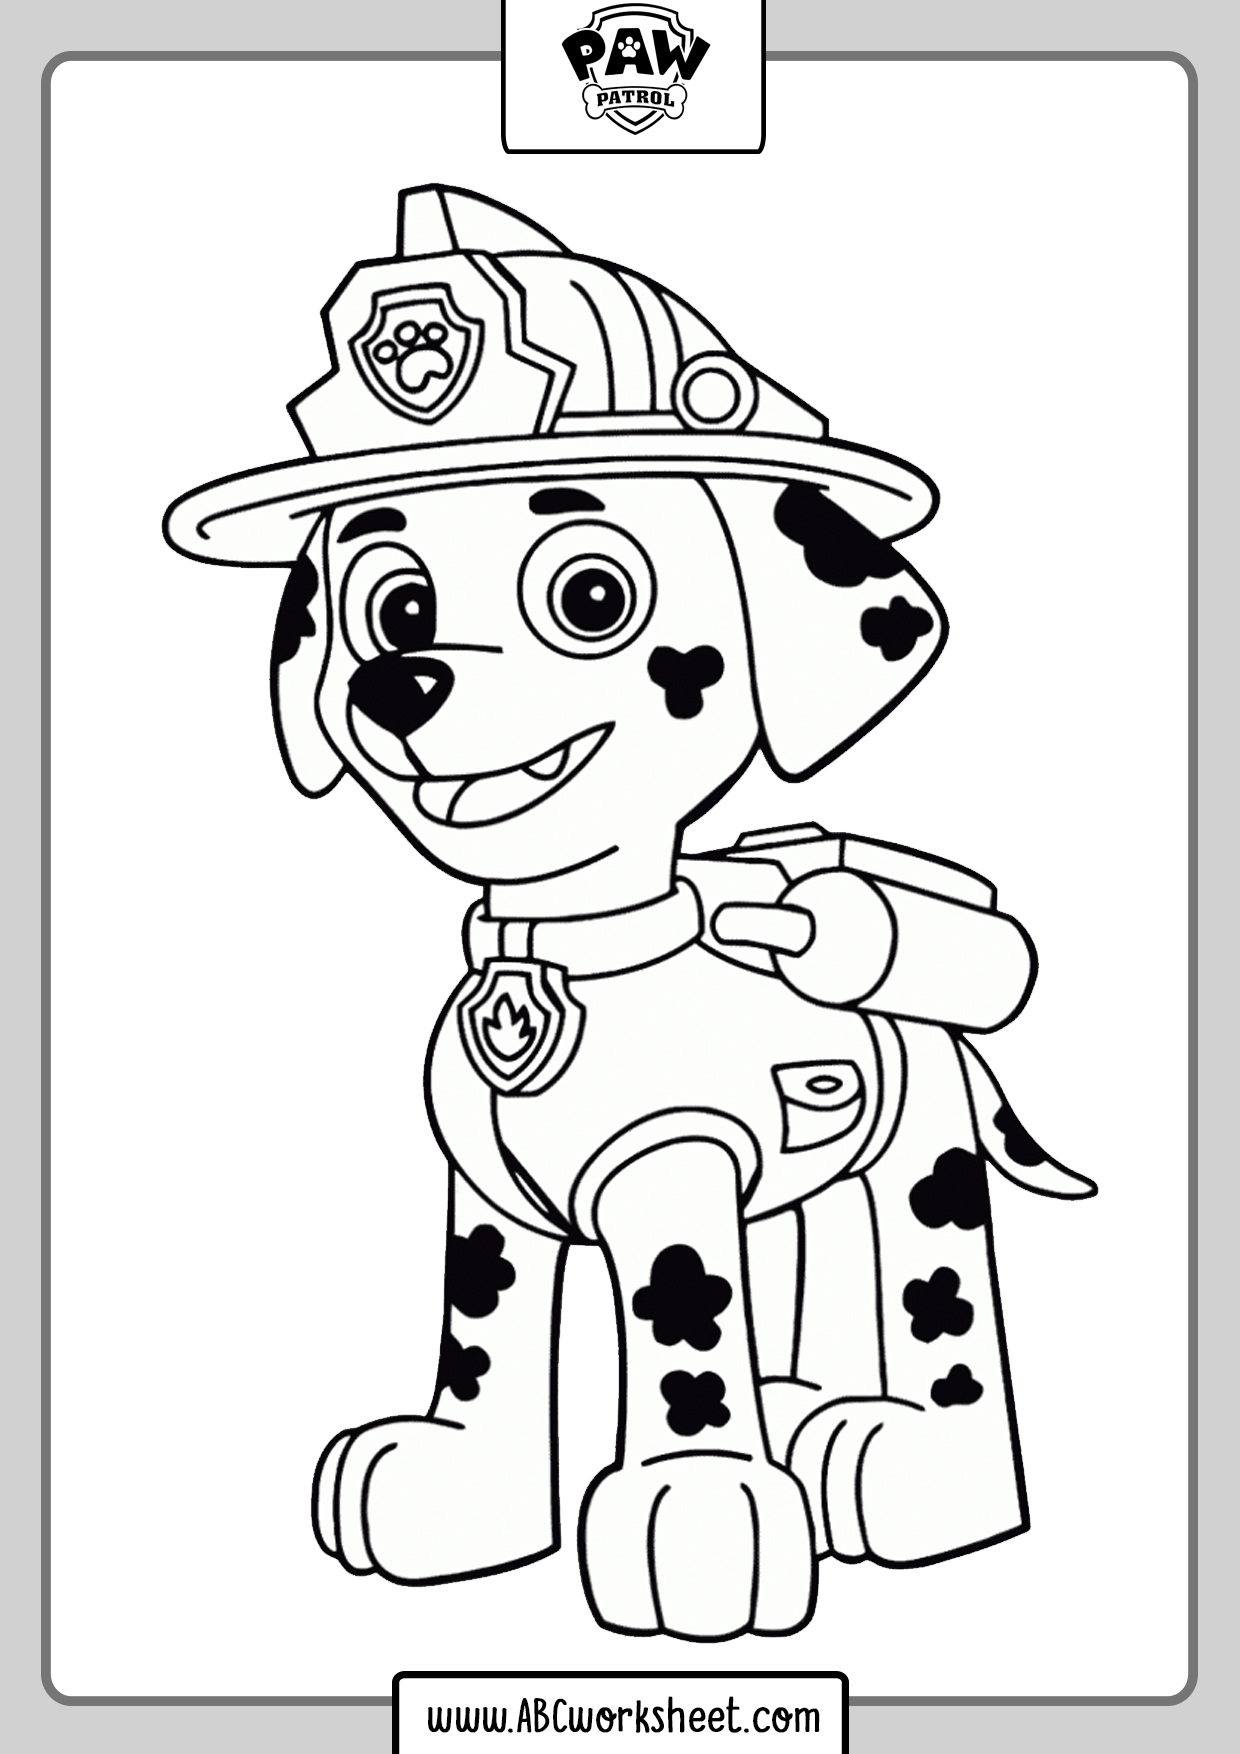 Paw Patrol Coloring Pages - ABC Worksheet